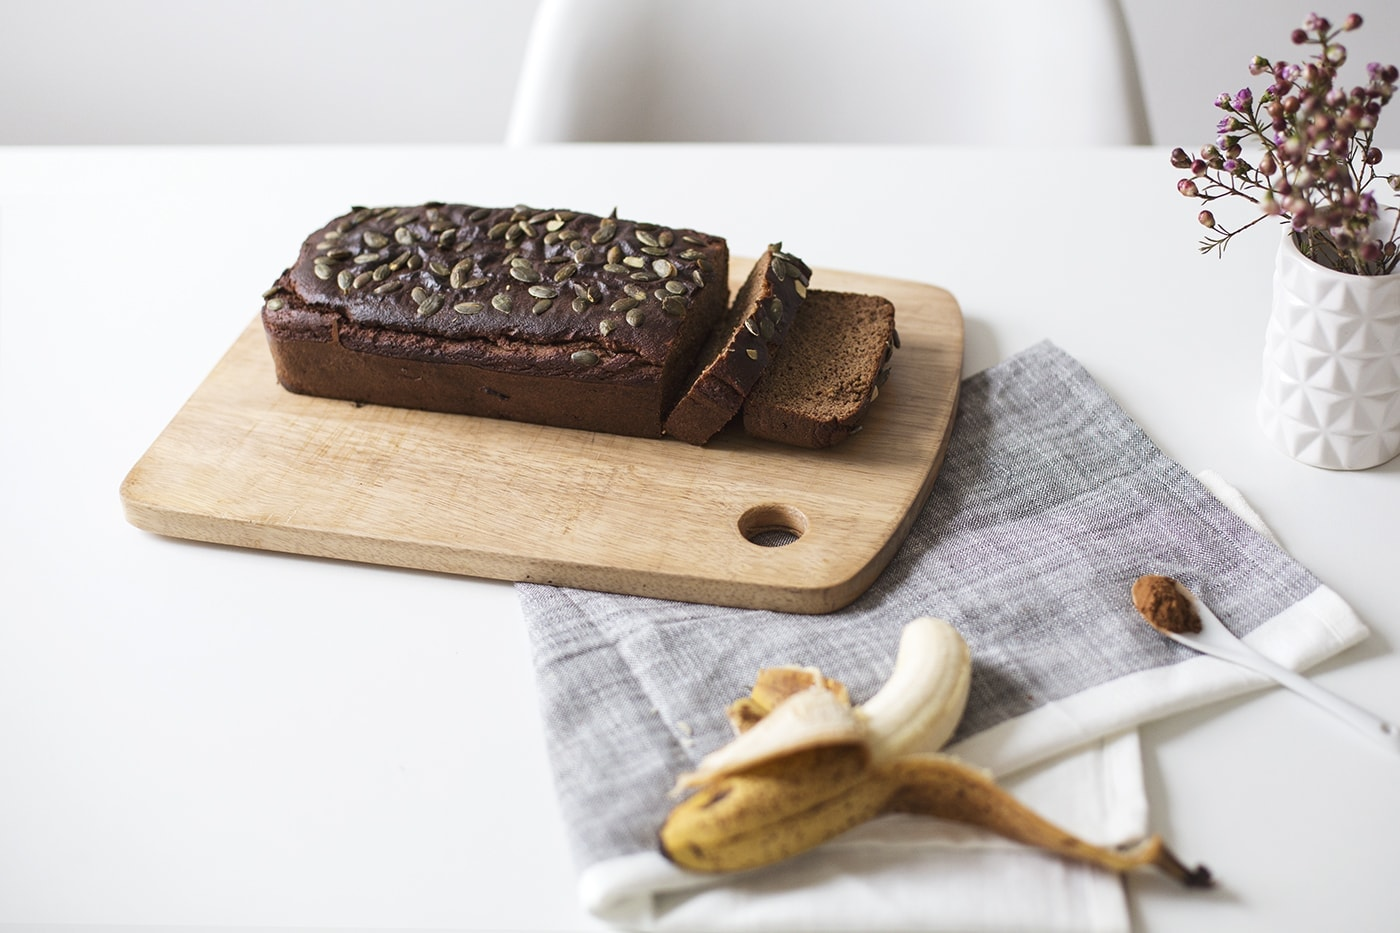 paleo seeded banana loaf | recipes | grain free baking | gluten free